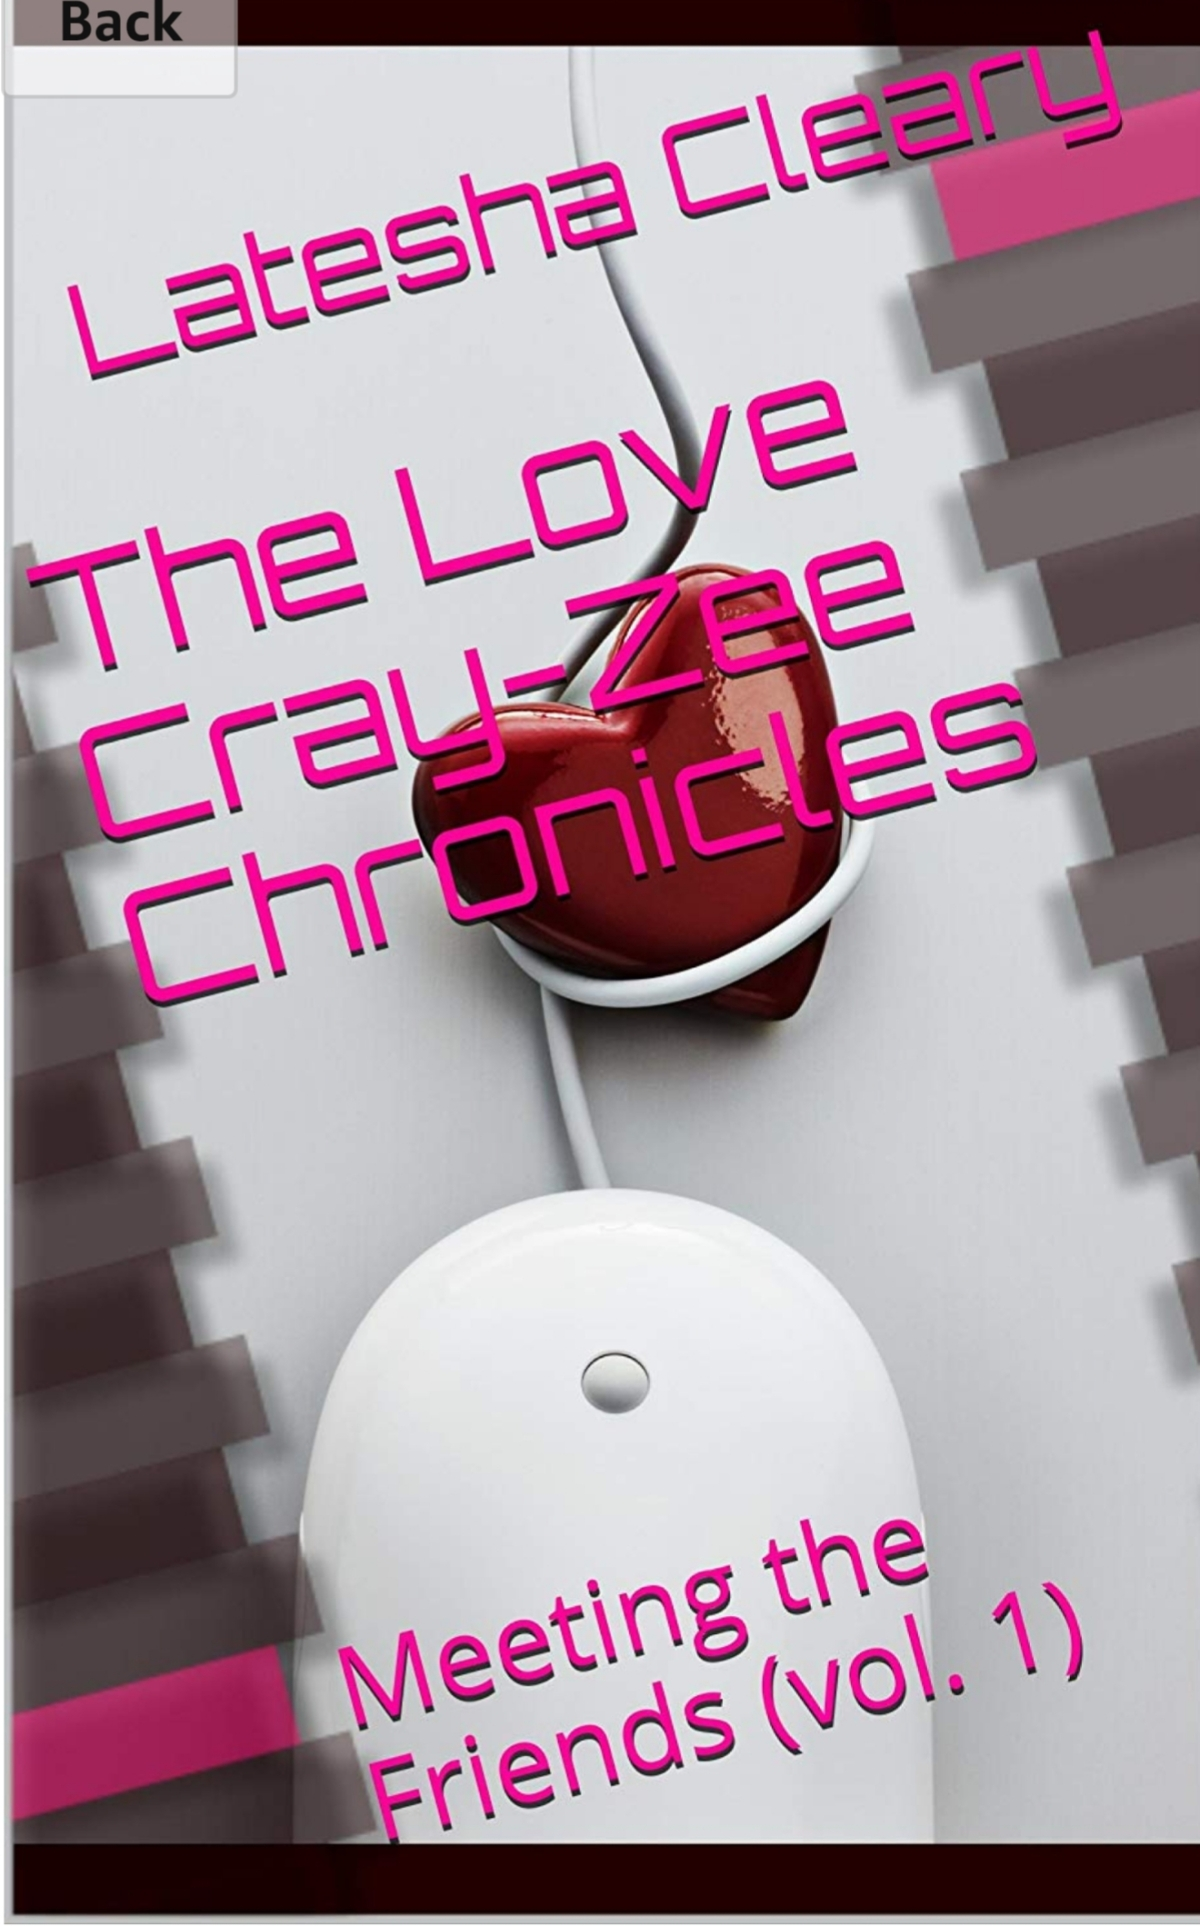 """The Love Cray-zee Chronicle's"""